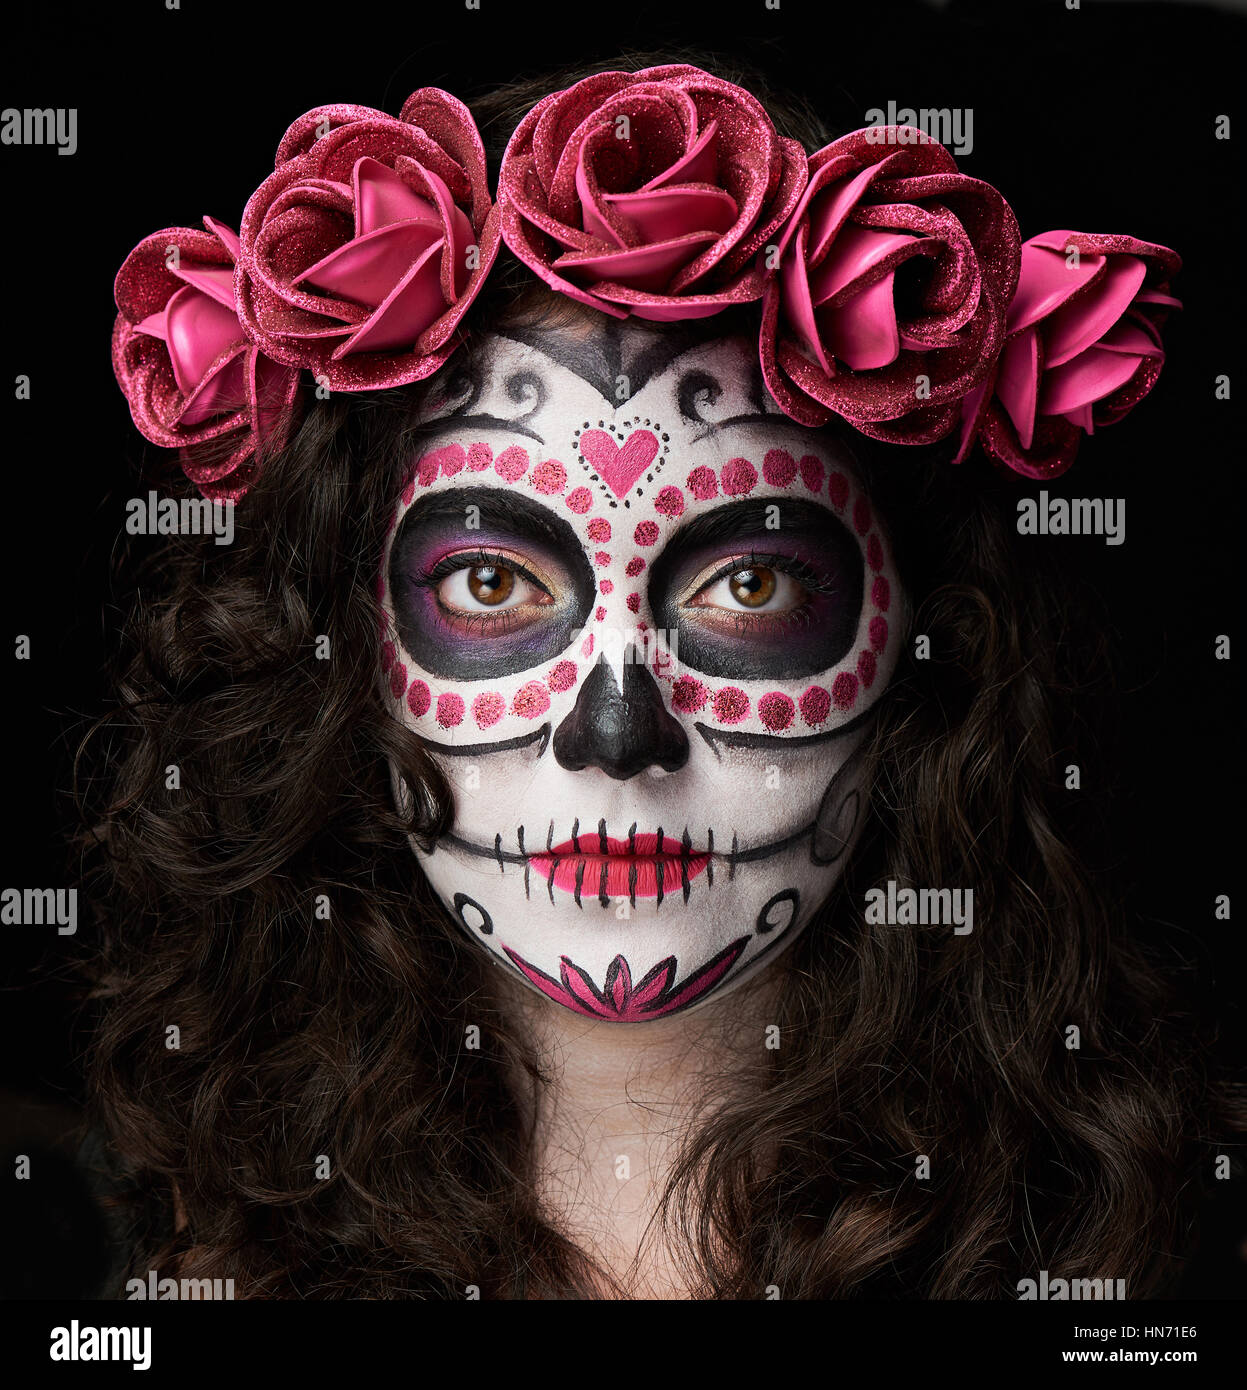 bons plans 2017 dans quelques jours dessins attrayants catrina skull portrait isolated on black background Stock ...